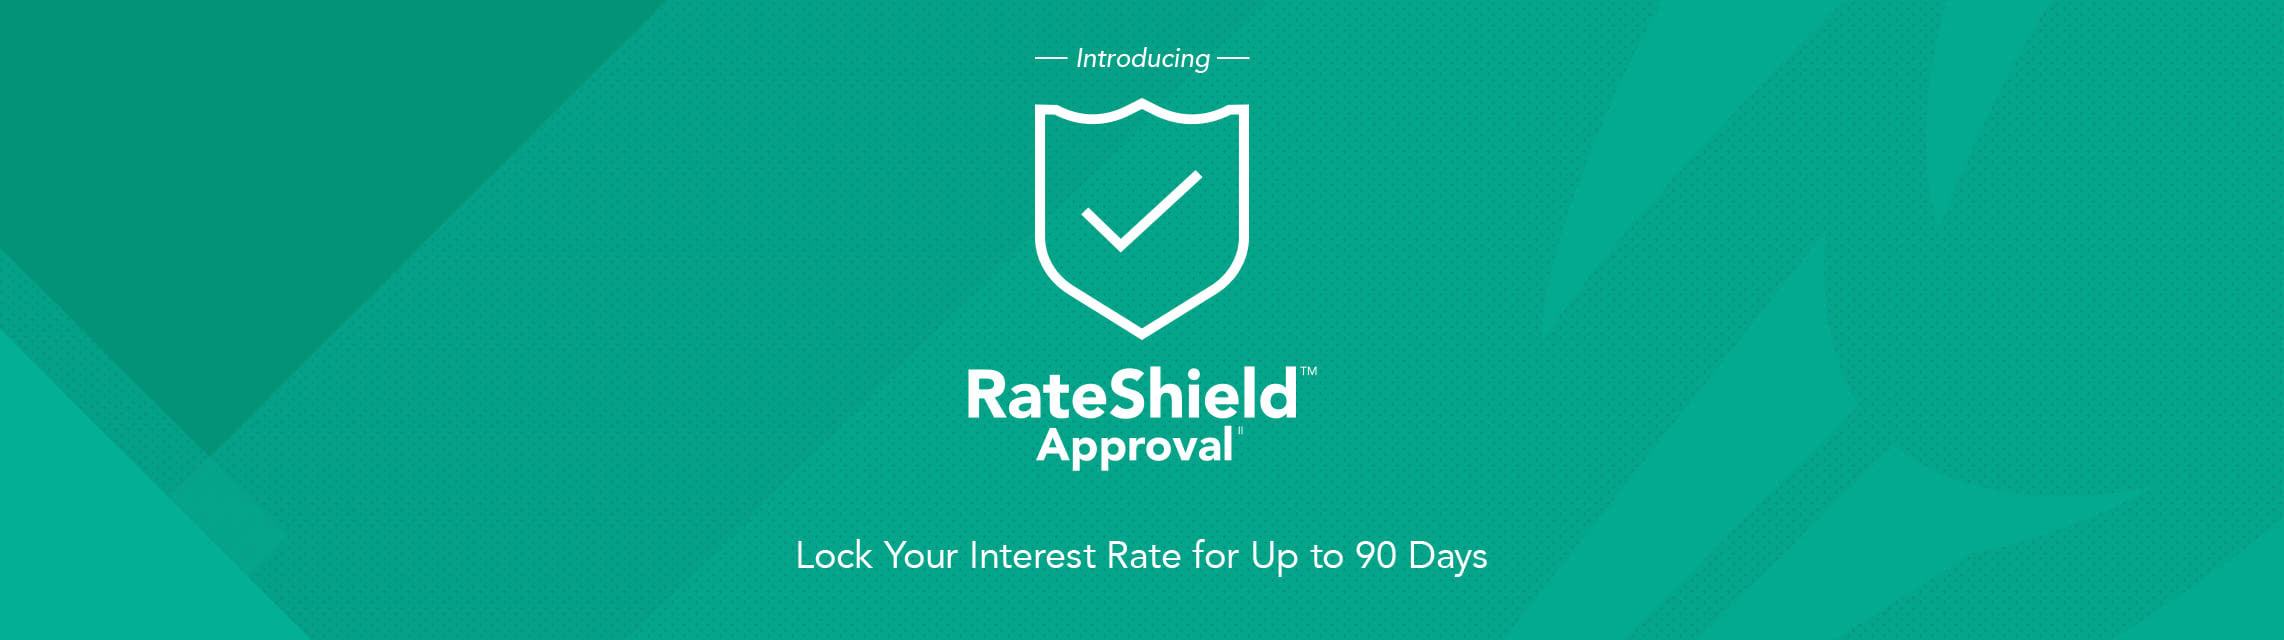 Introducing RateShield Approval. Lock your interest rate for up to 90 days.